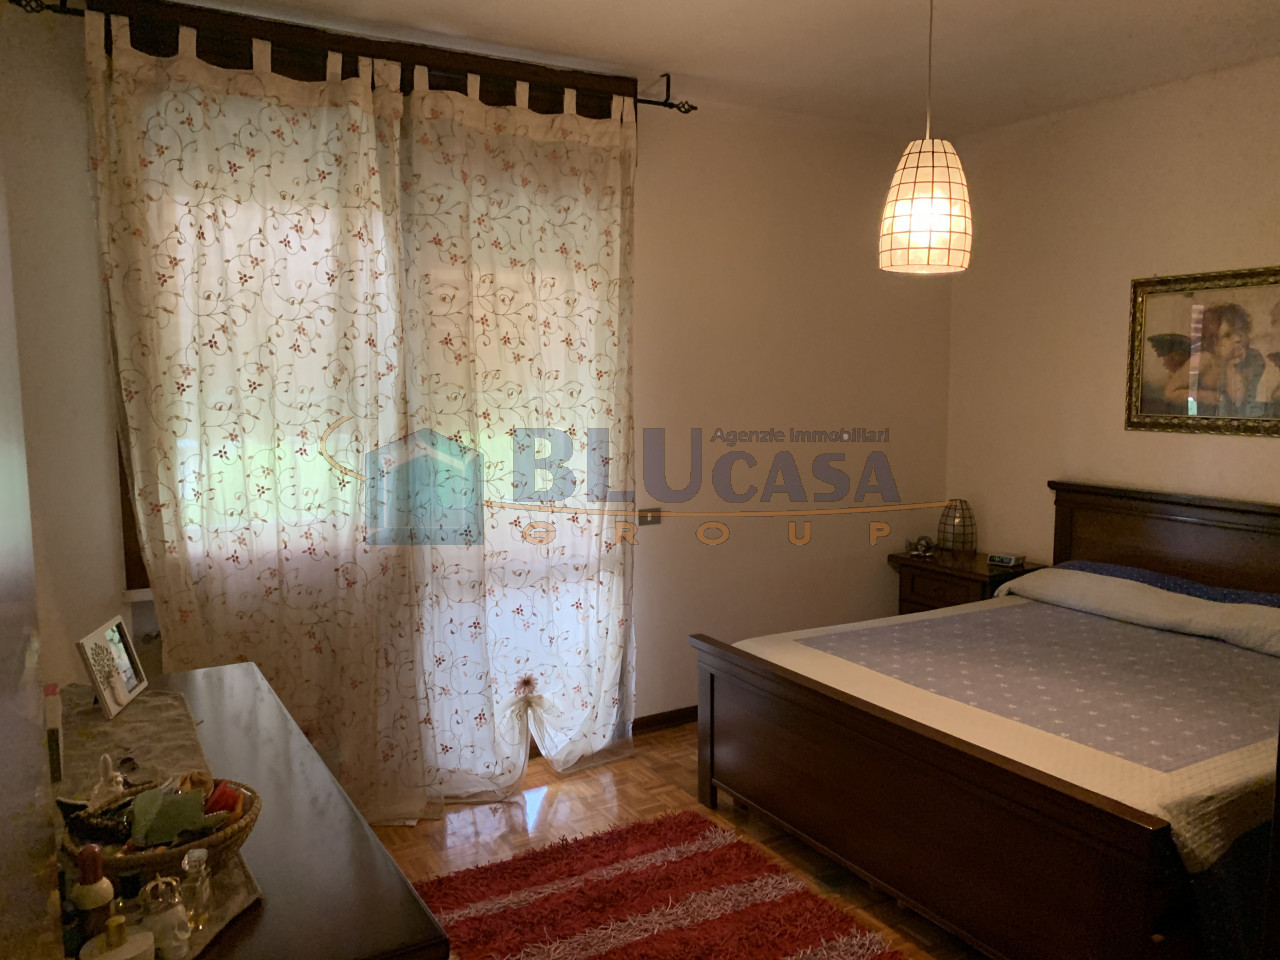 J02 Appartamento 3 camere a Mandriola https://images.gestionaleimmobiliare.it/foto/annunci/210609/2623100/1280x1280/006__anyconv_com__img_3601.jpg